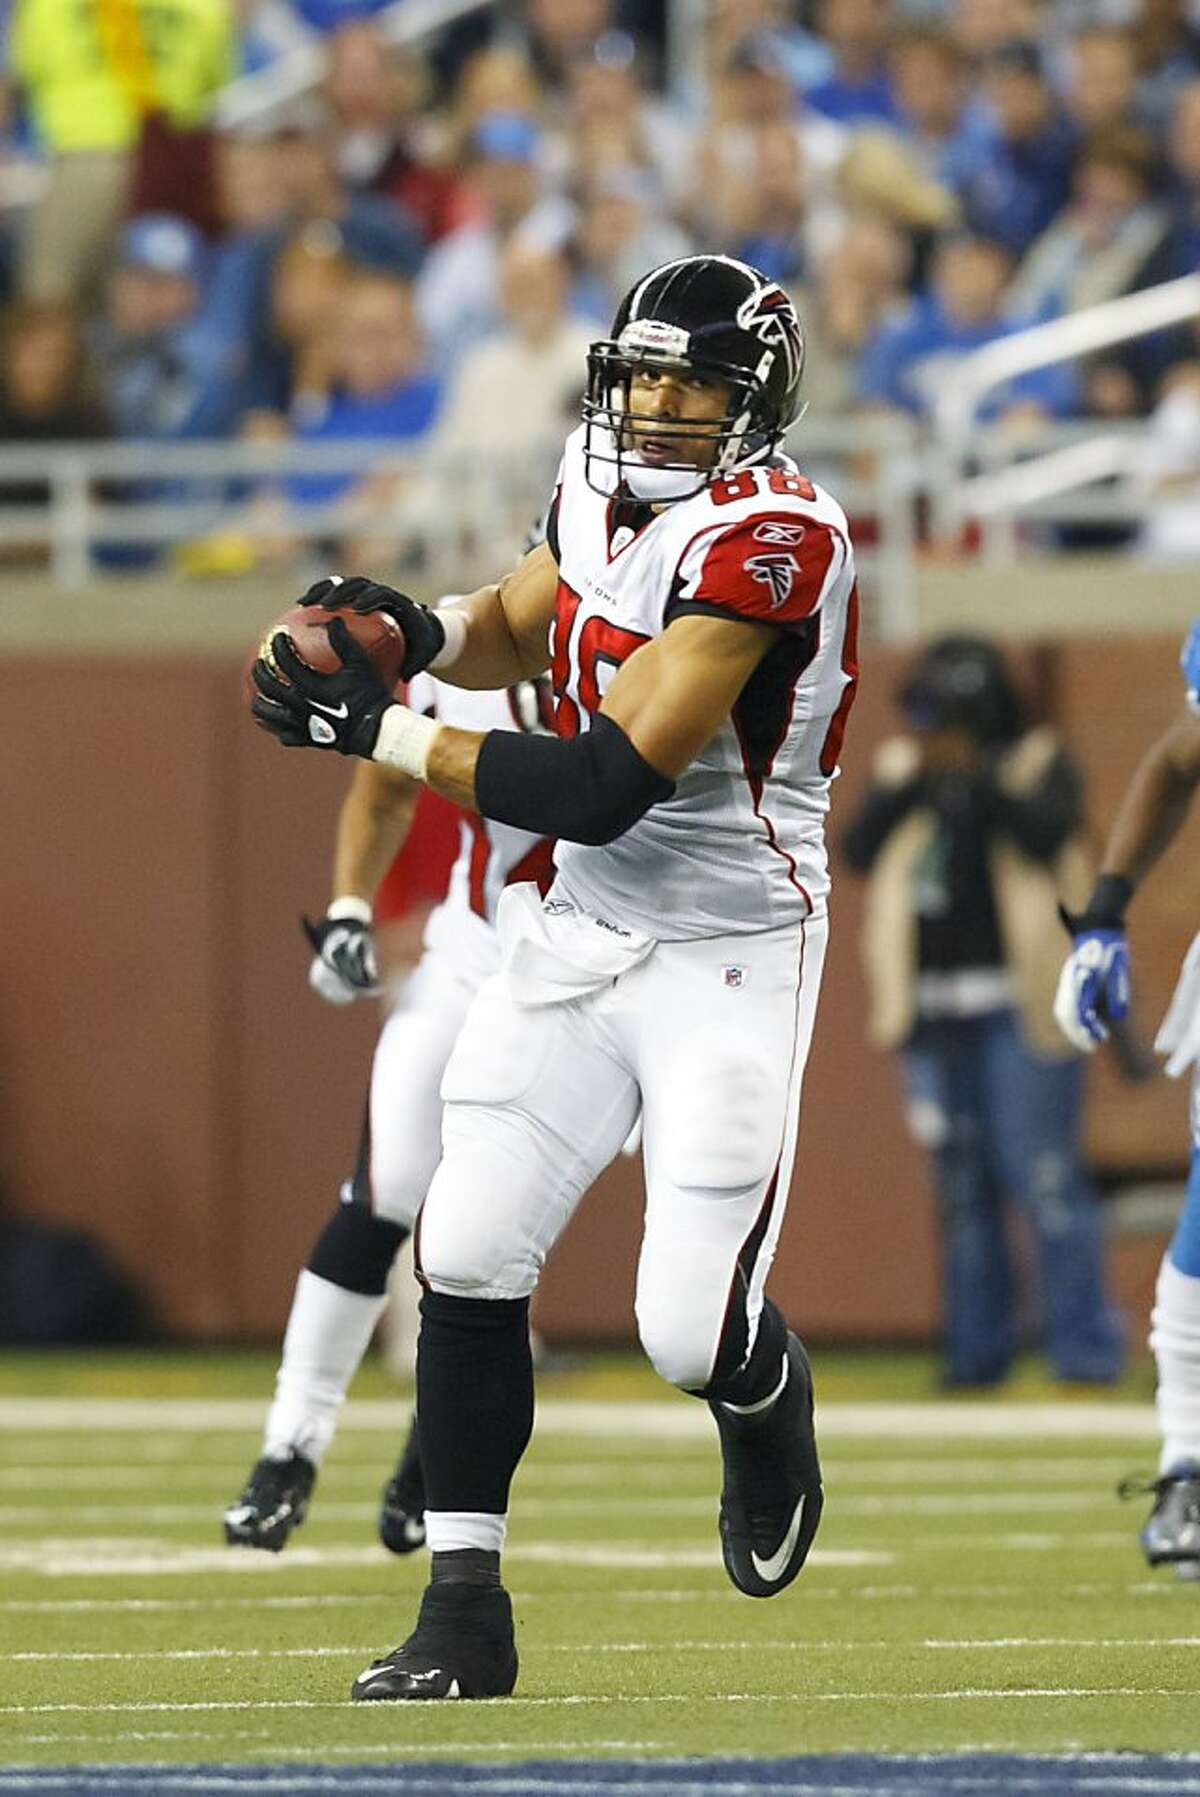 Atlanta Falcons tight end Tony Gonzalez (88) pulls in a reception during the second quarter of an NFL football game against the Detroit Lions in Detroit, Sunday, Oct. 23, 2011.